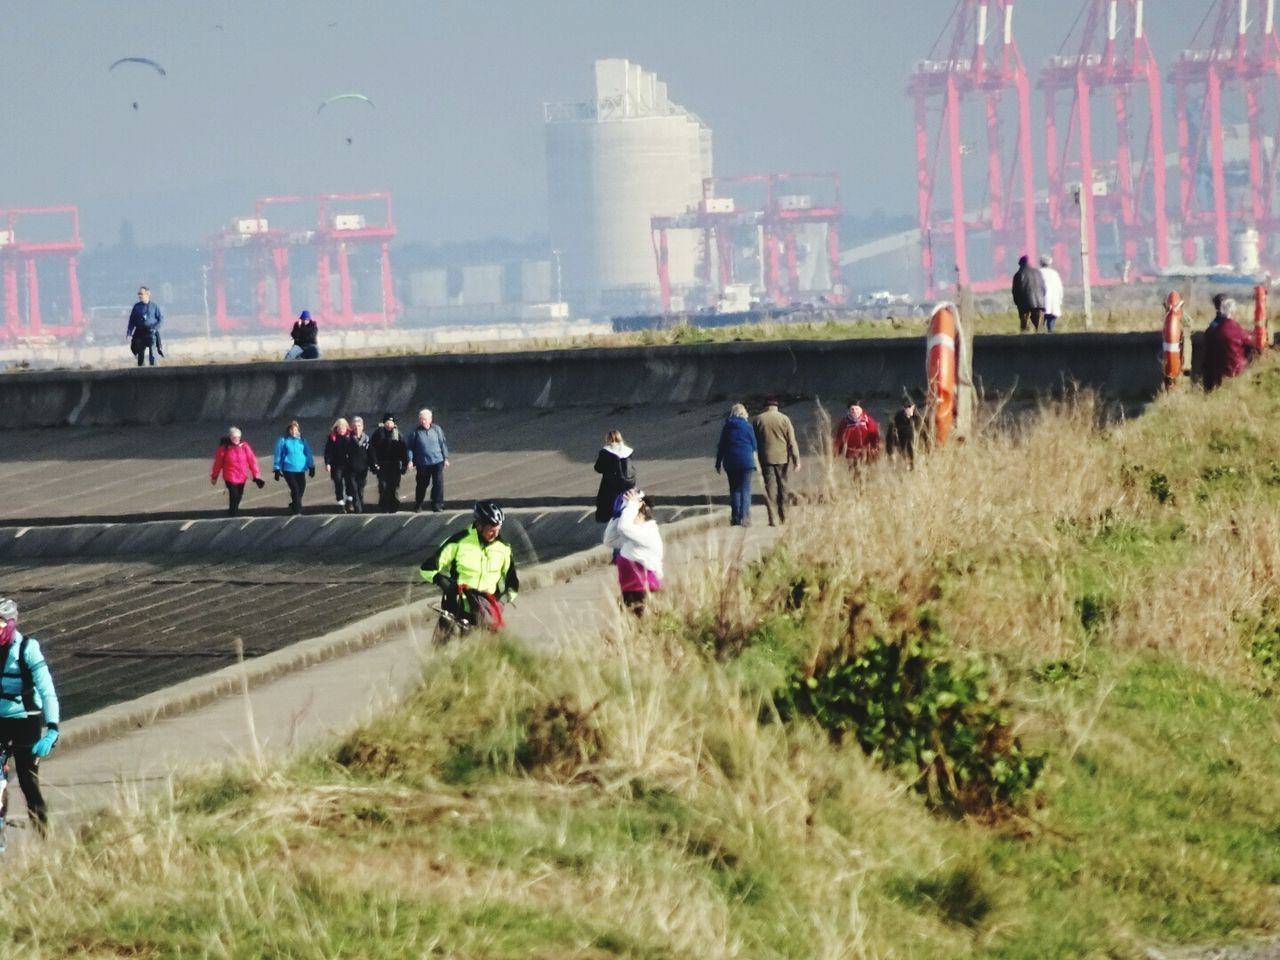 Sunday morning Leisure Activity People Embankment Wallasey Outdoors Day Walking Along Embankment Real People Liverpool Docks In Background Paragliders Coastline Fresh Air Winters Day Nature Coastal Walk